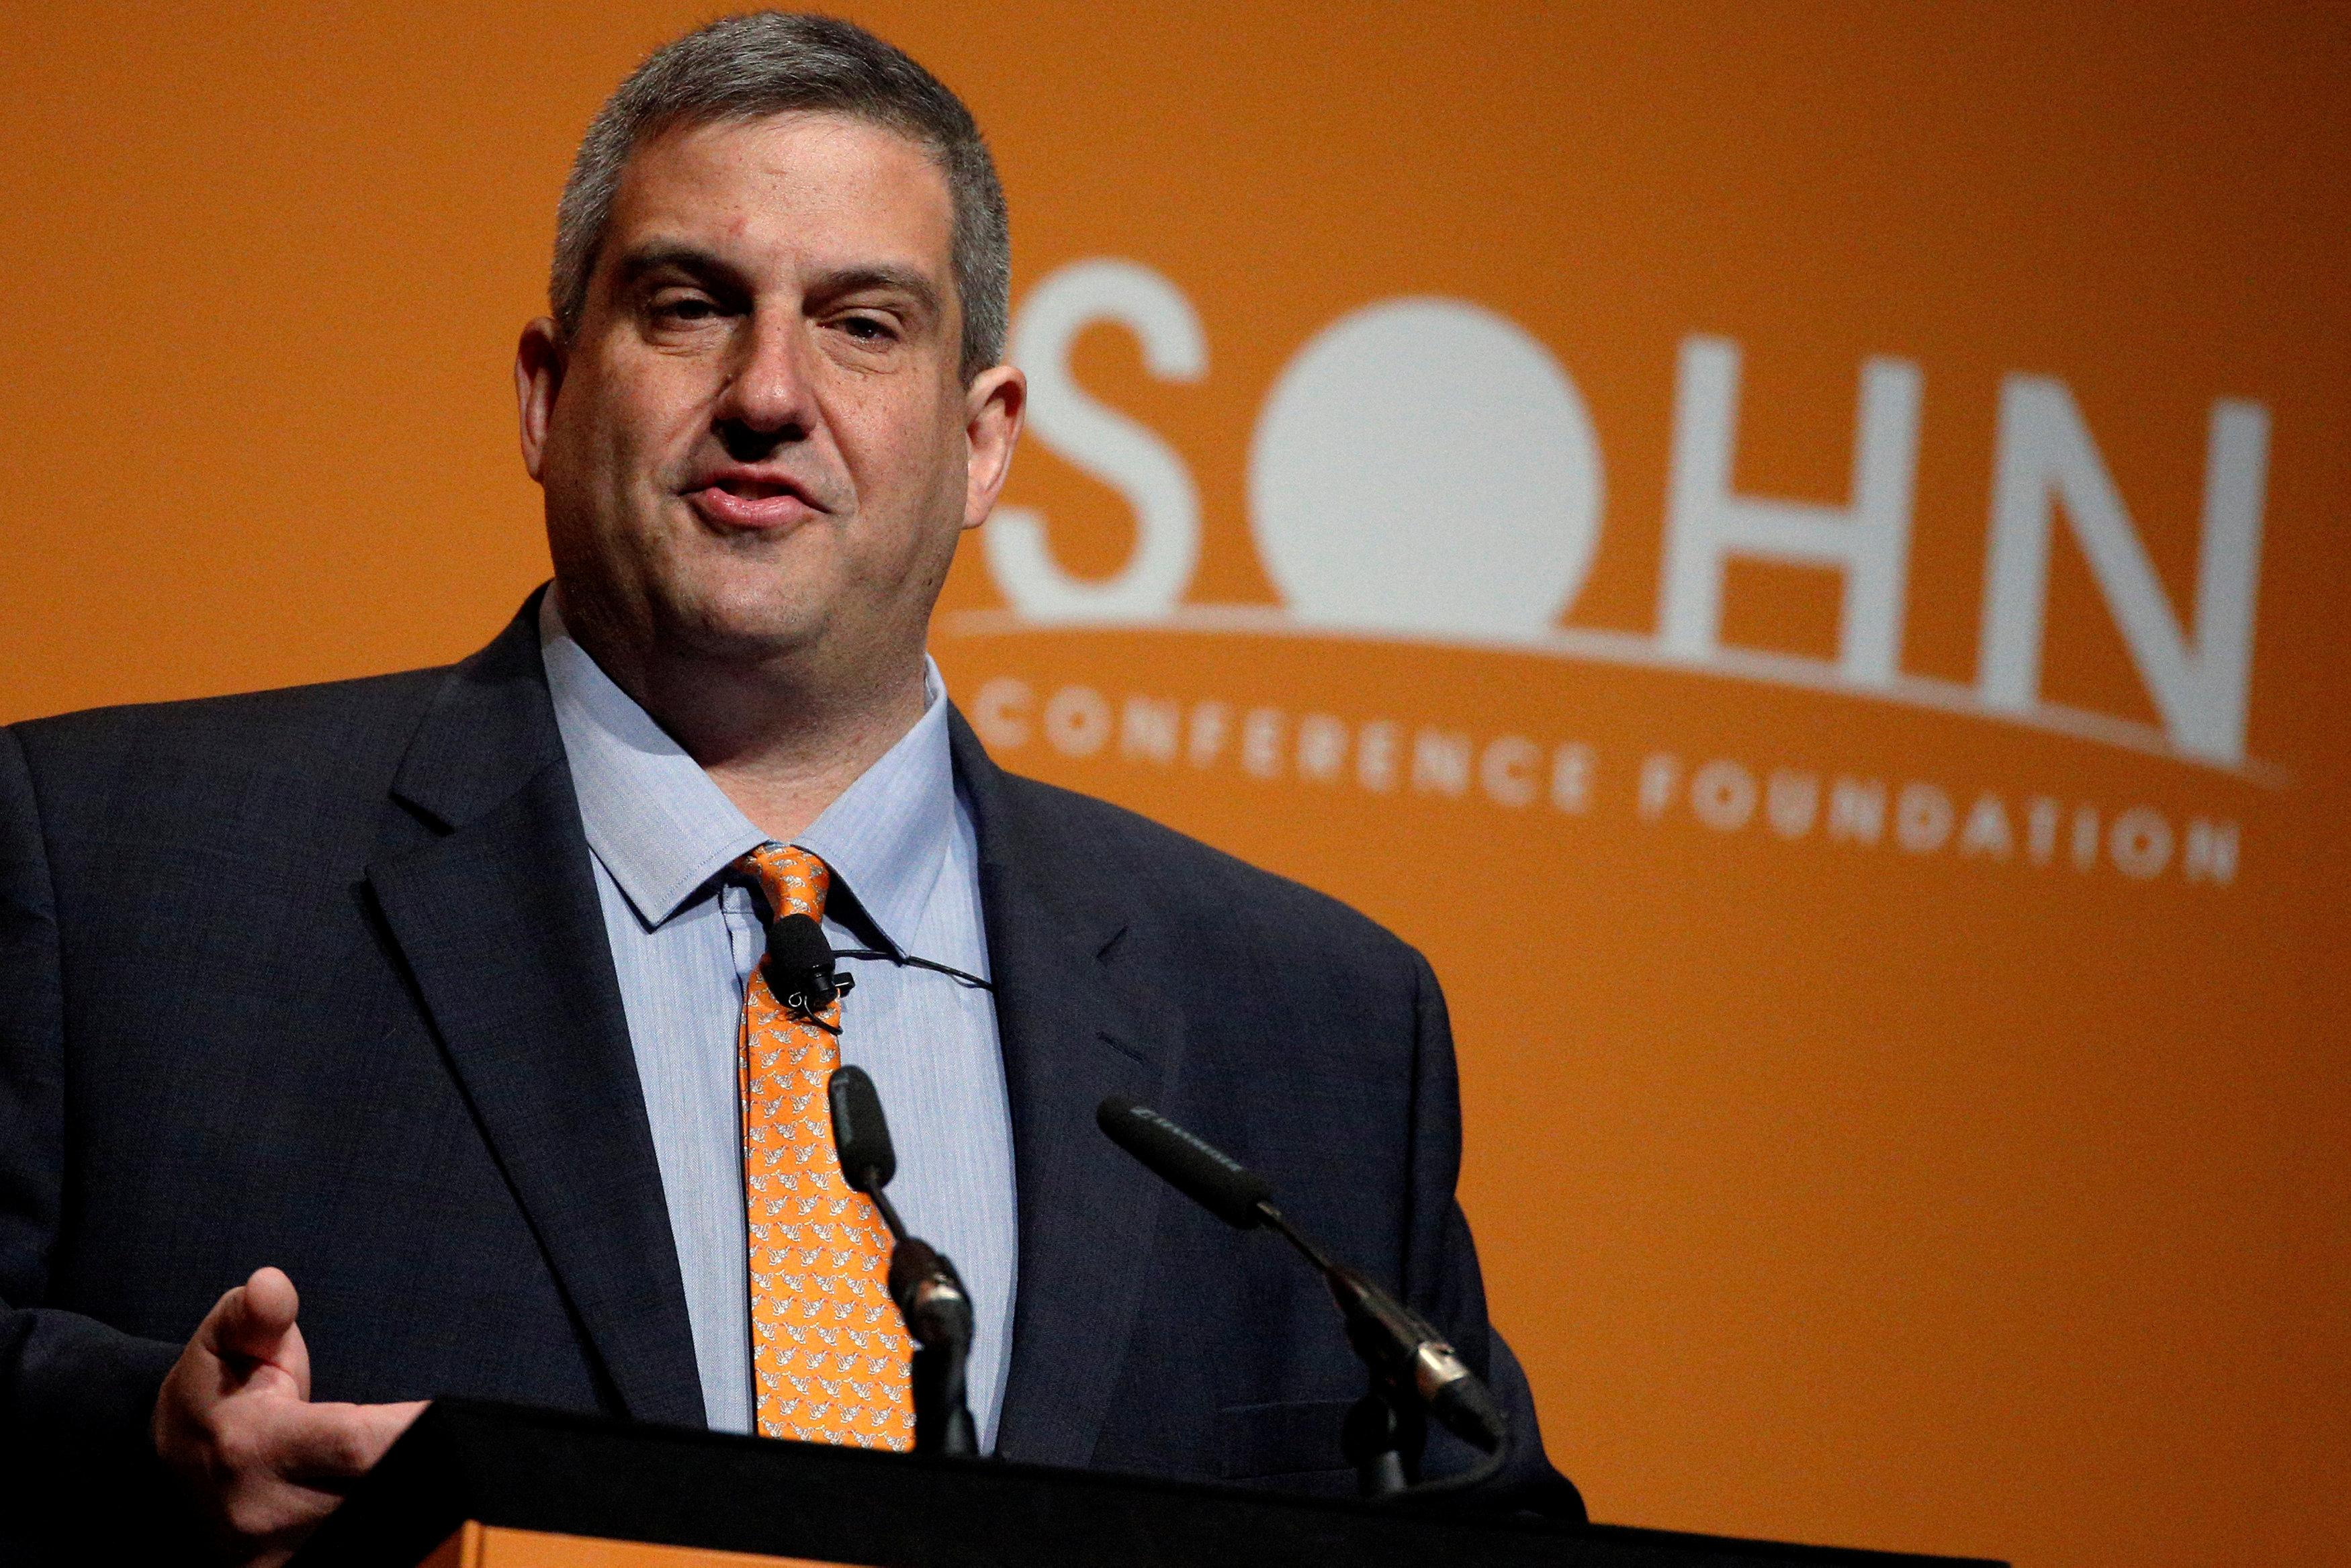 Larry Robbins, Founder, Portfolio Manager and CEO, Glenview Capital Management LLC., speaks at the Sohn Investment Conference in New York City, U.S. on May 4, 2016.  Brendan McDermid